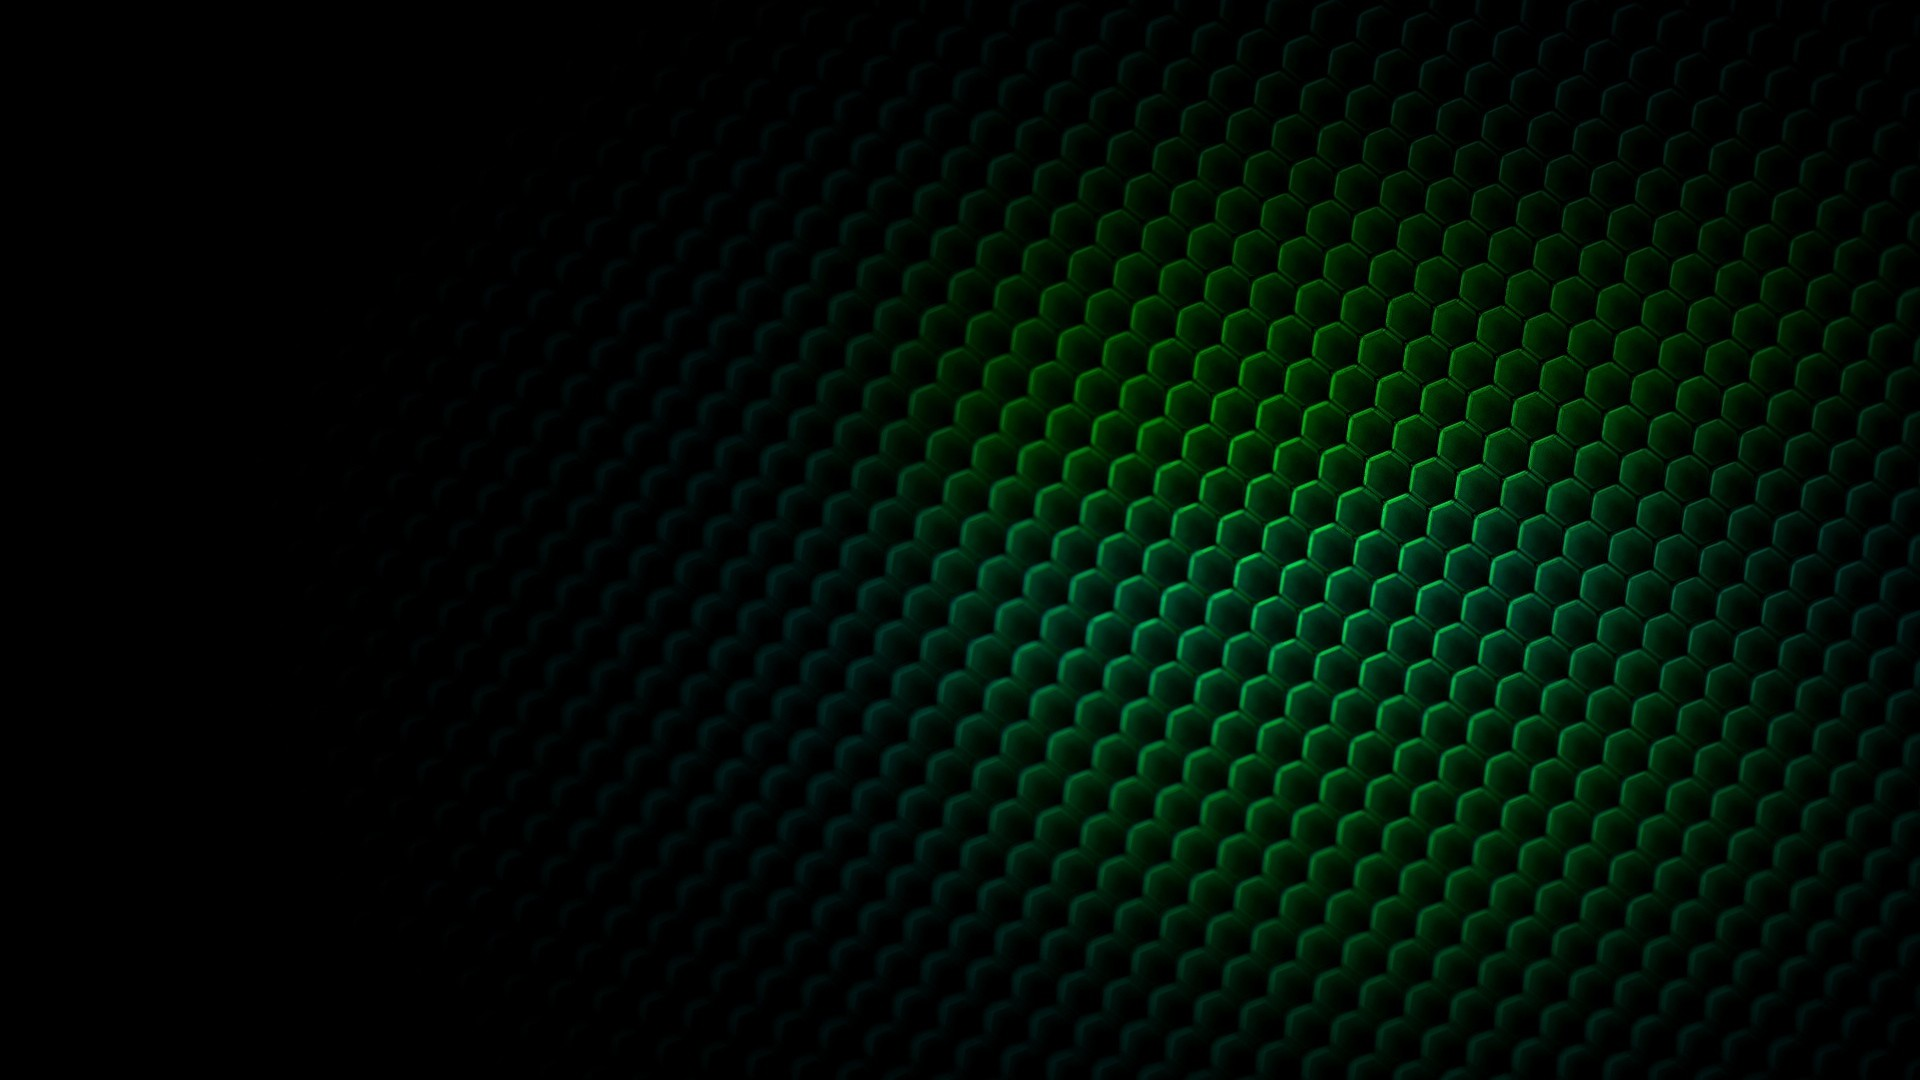 3d Animation Wallpaper For Android Mobile Black And Green Wallpapers 64 Images